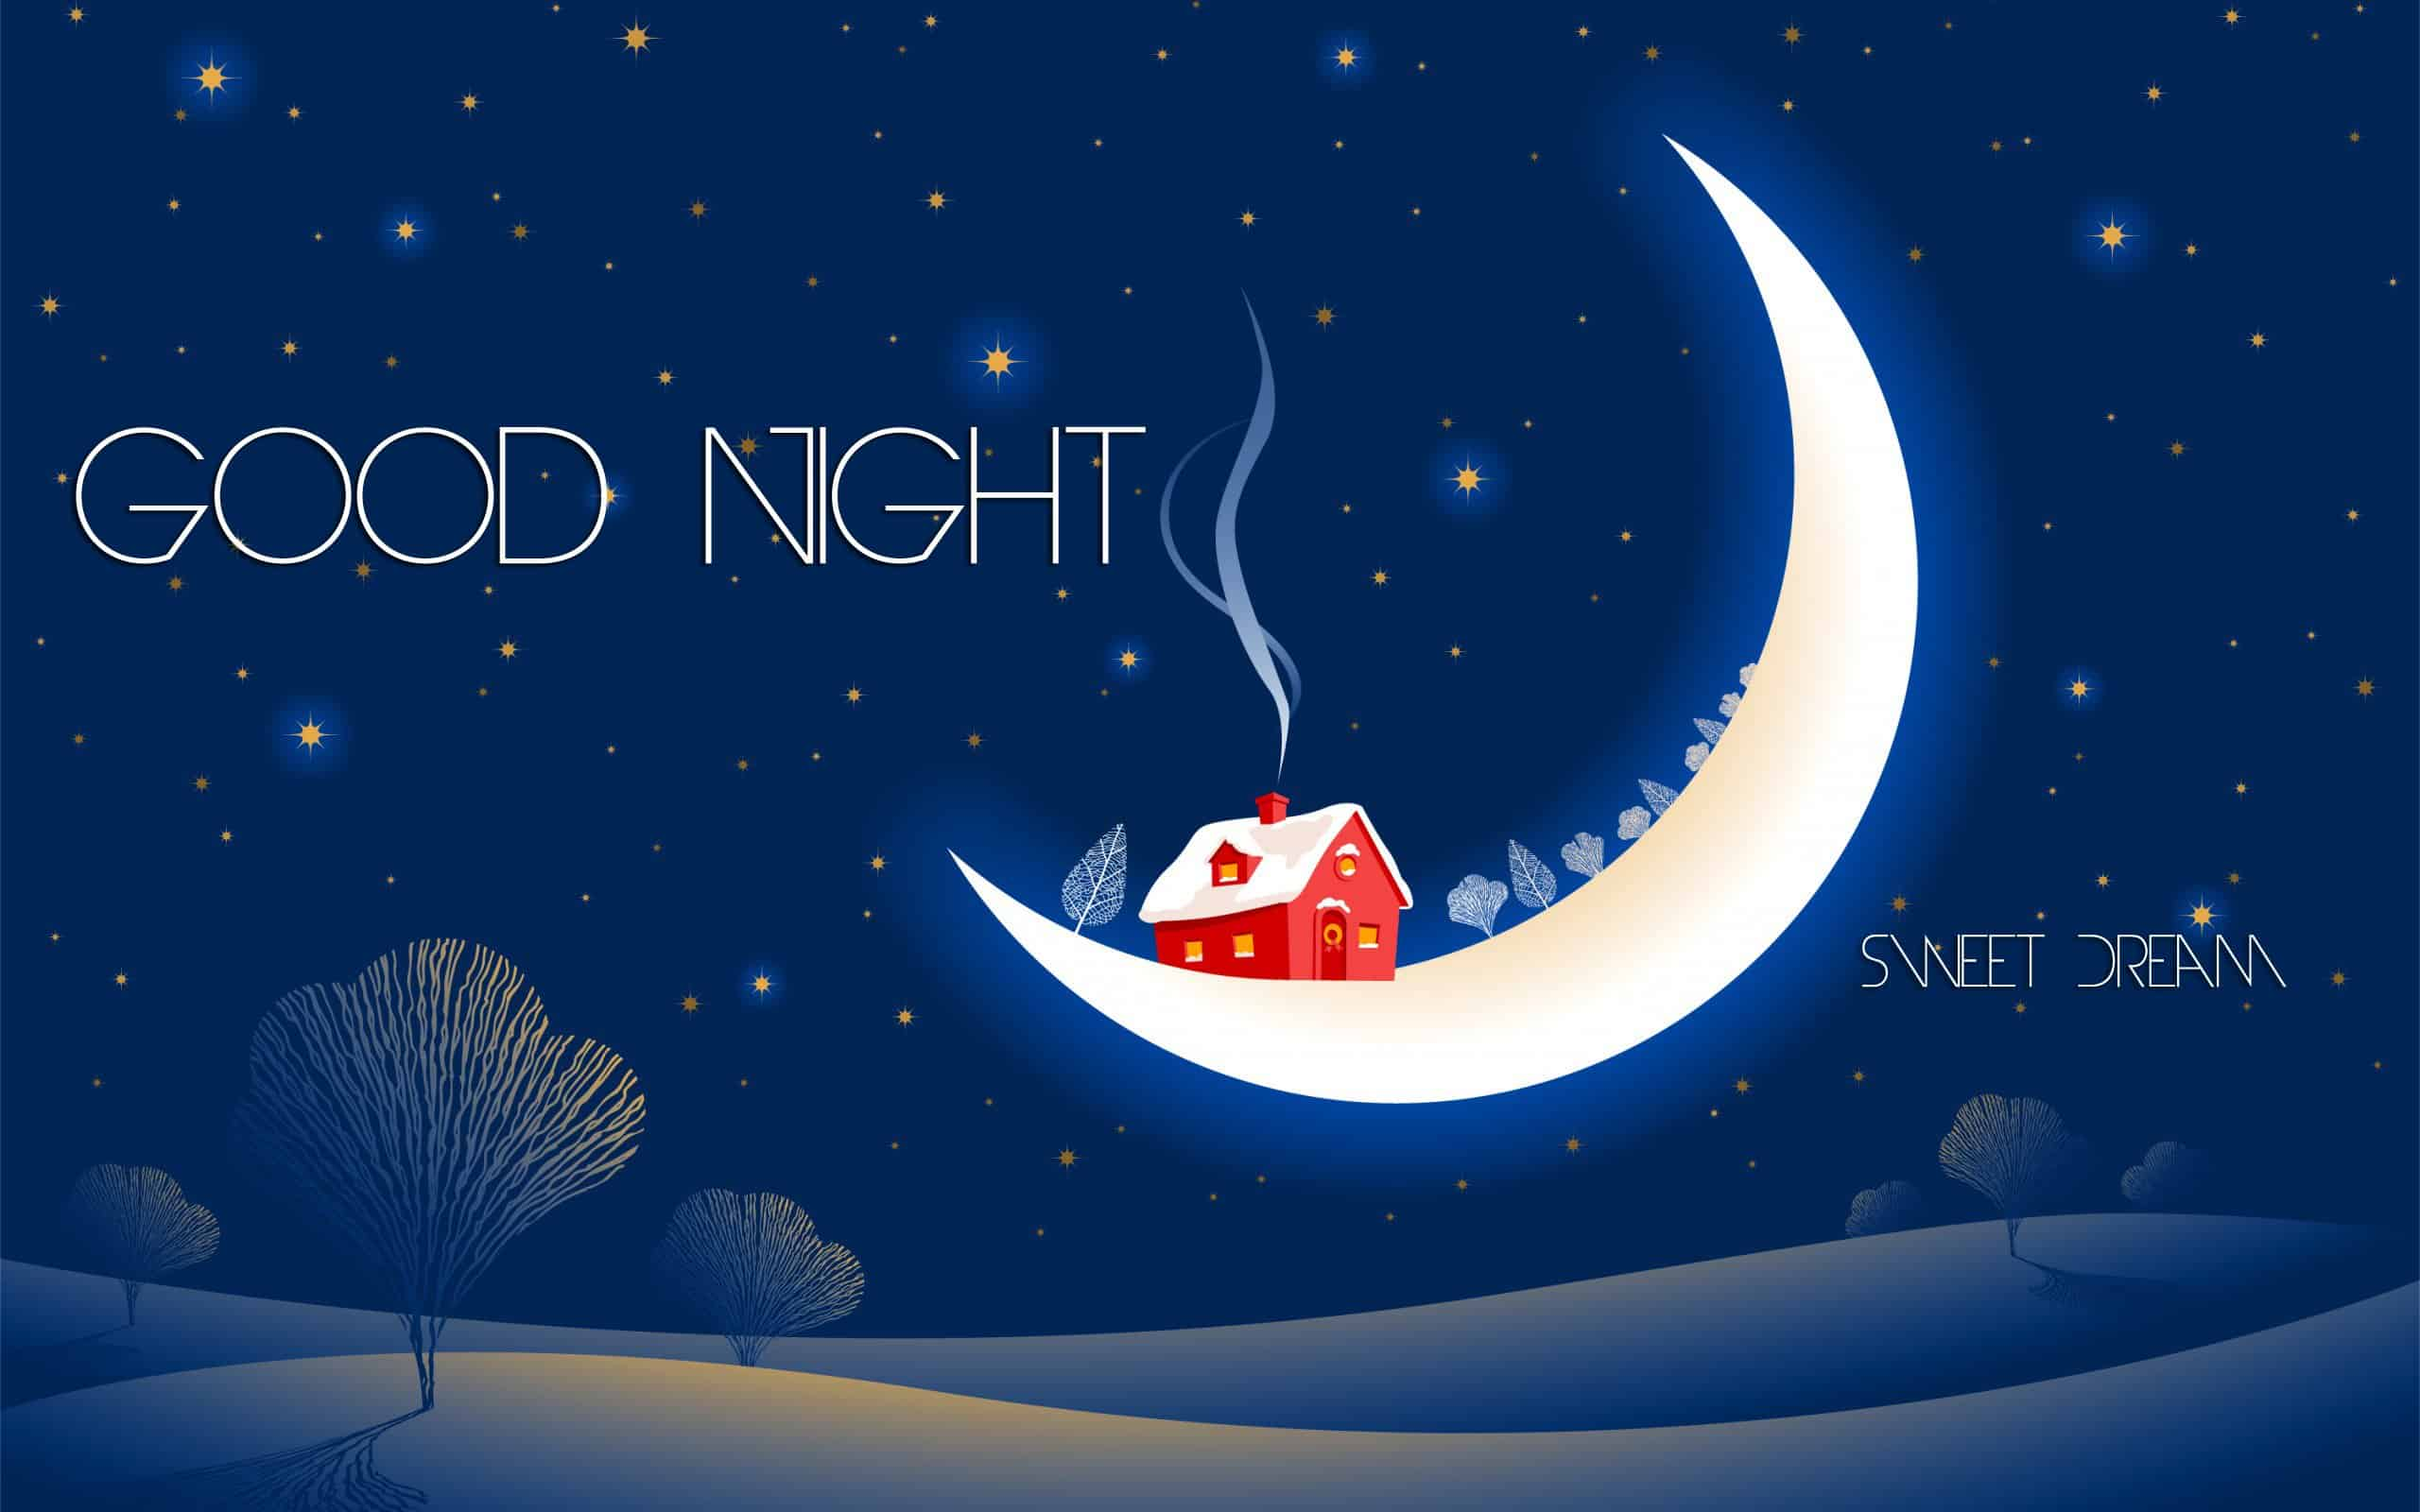 sweet dreams hd wallpapers - photo #35